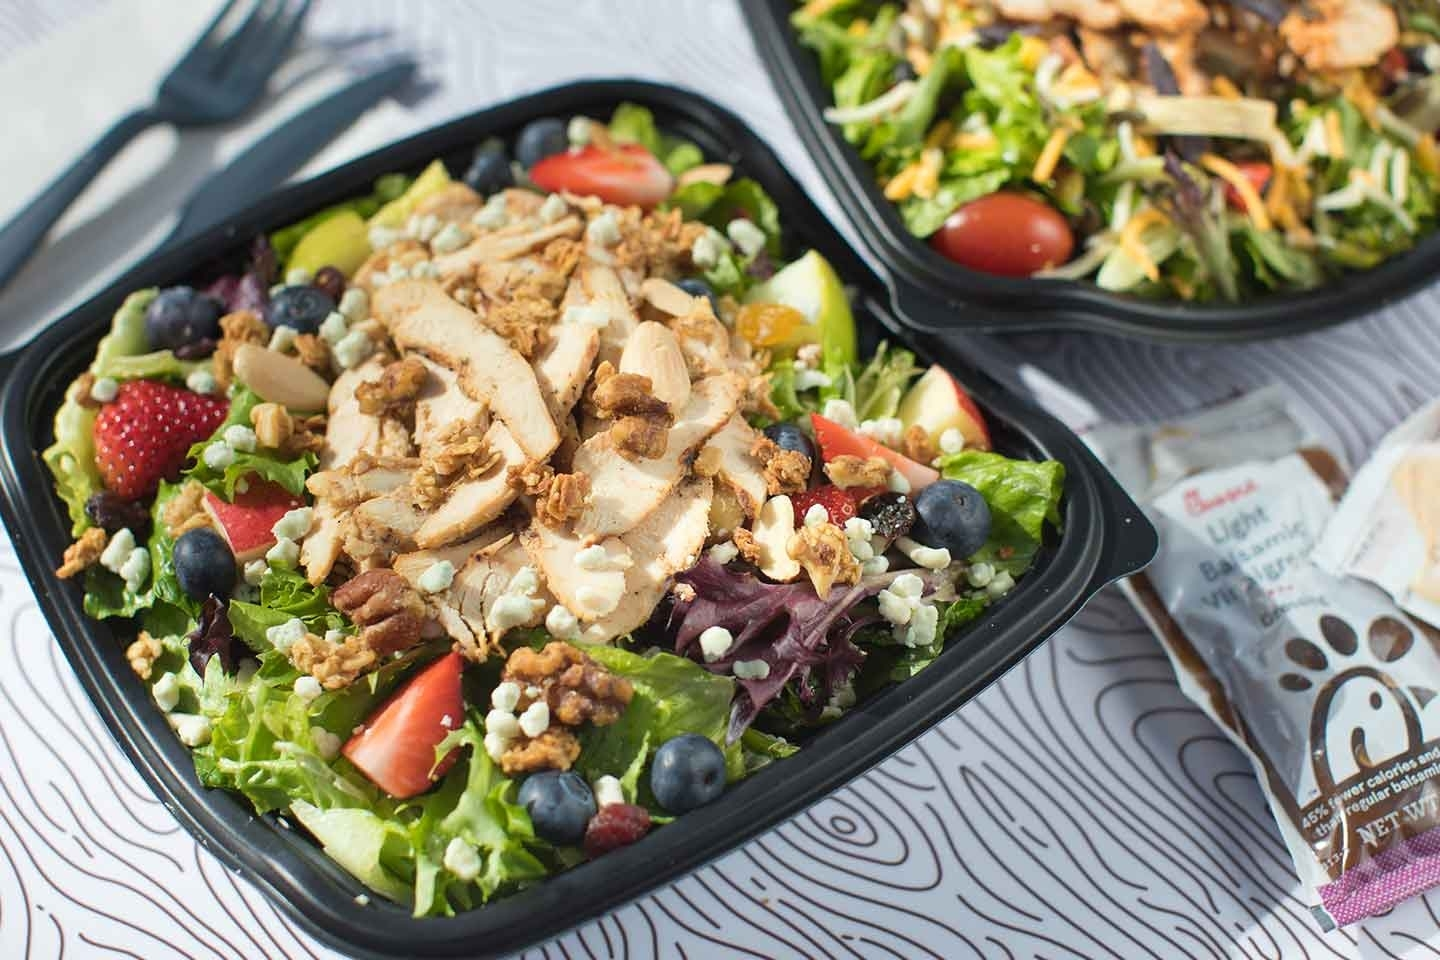 Can You Guess The Most Popular Chick-Fil-A Salad? | Chick-Fil-A inside Will Chick Fi La Do The Calendar In 2020